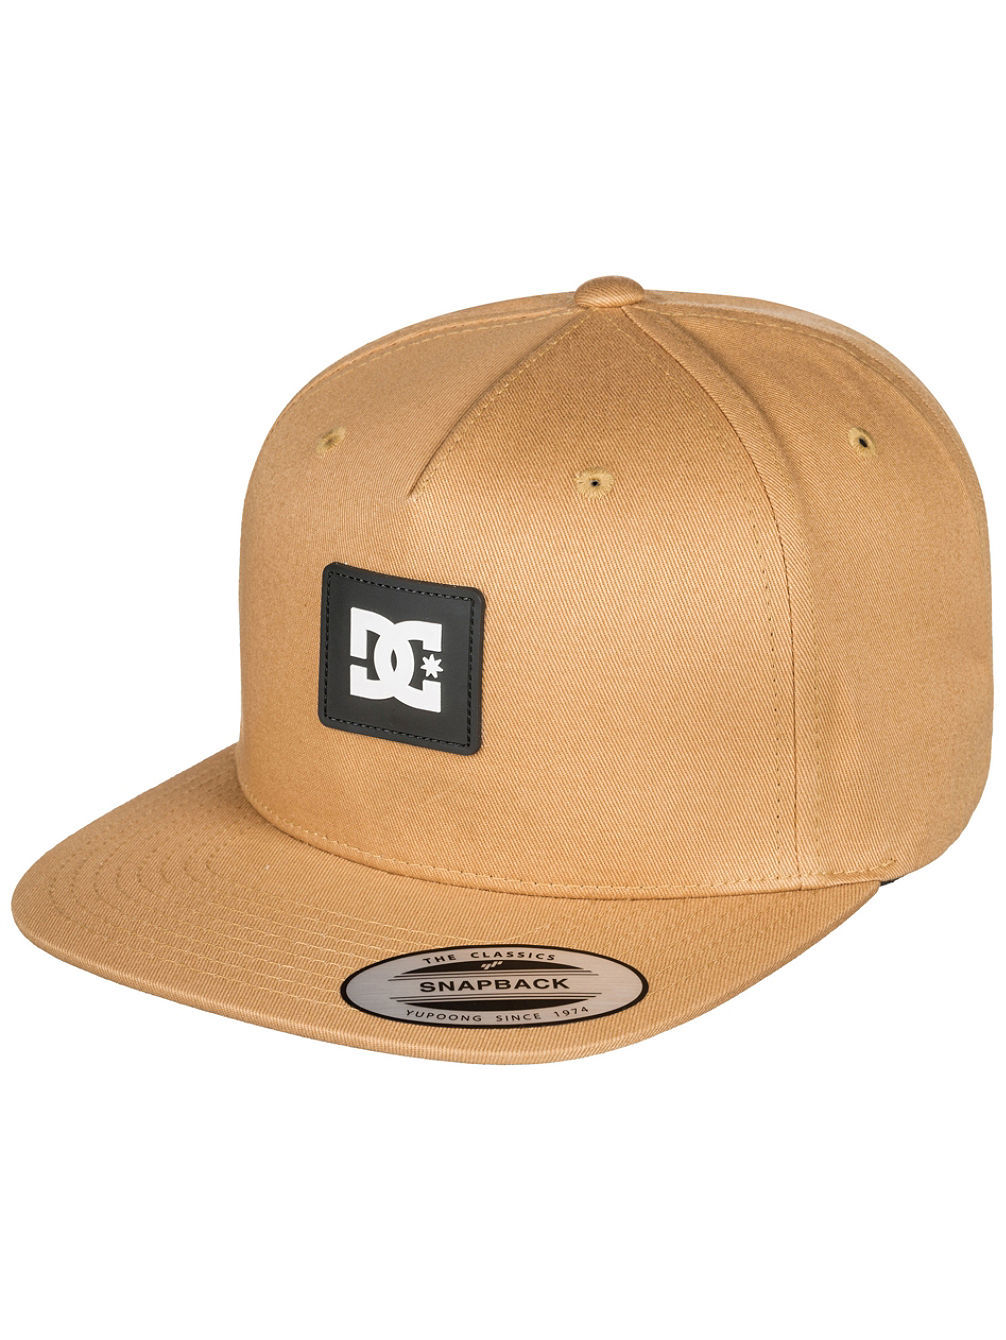 b0f77ba59ce Buy DC Snapdoodle Cap online at Blue Tomato